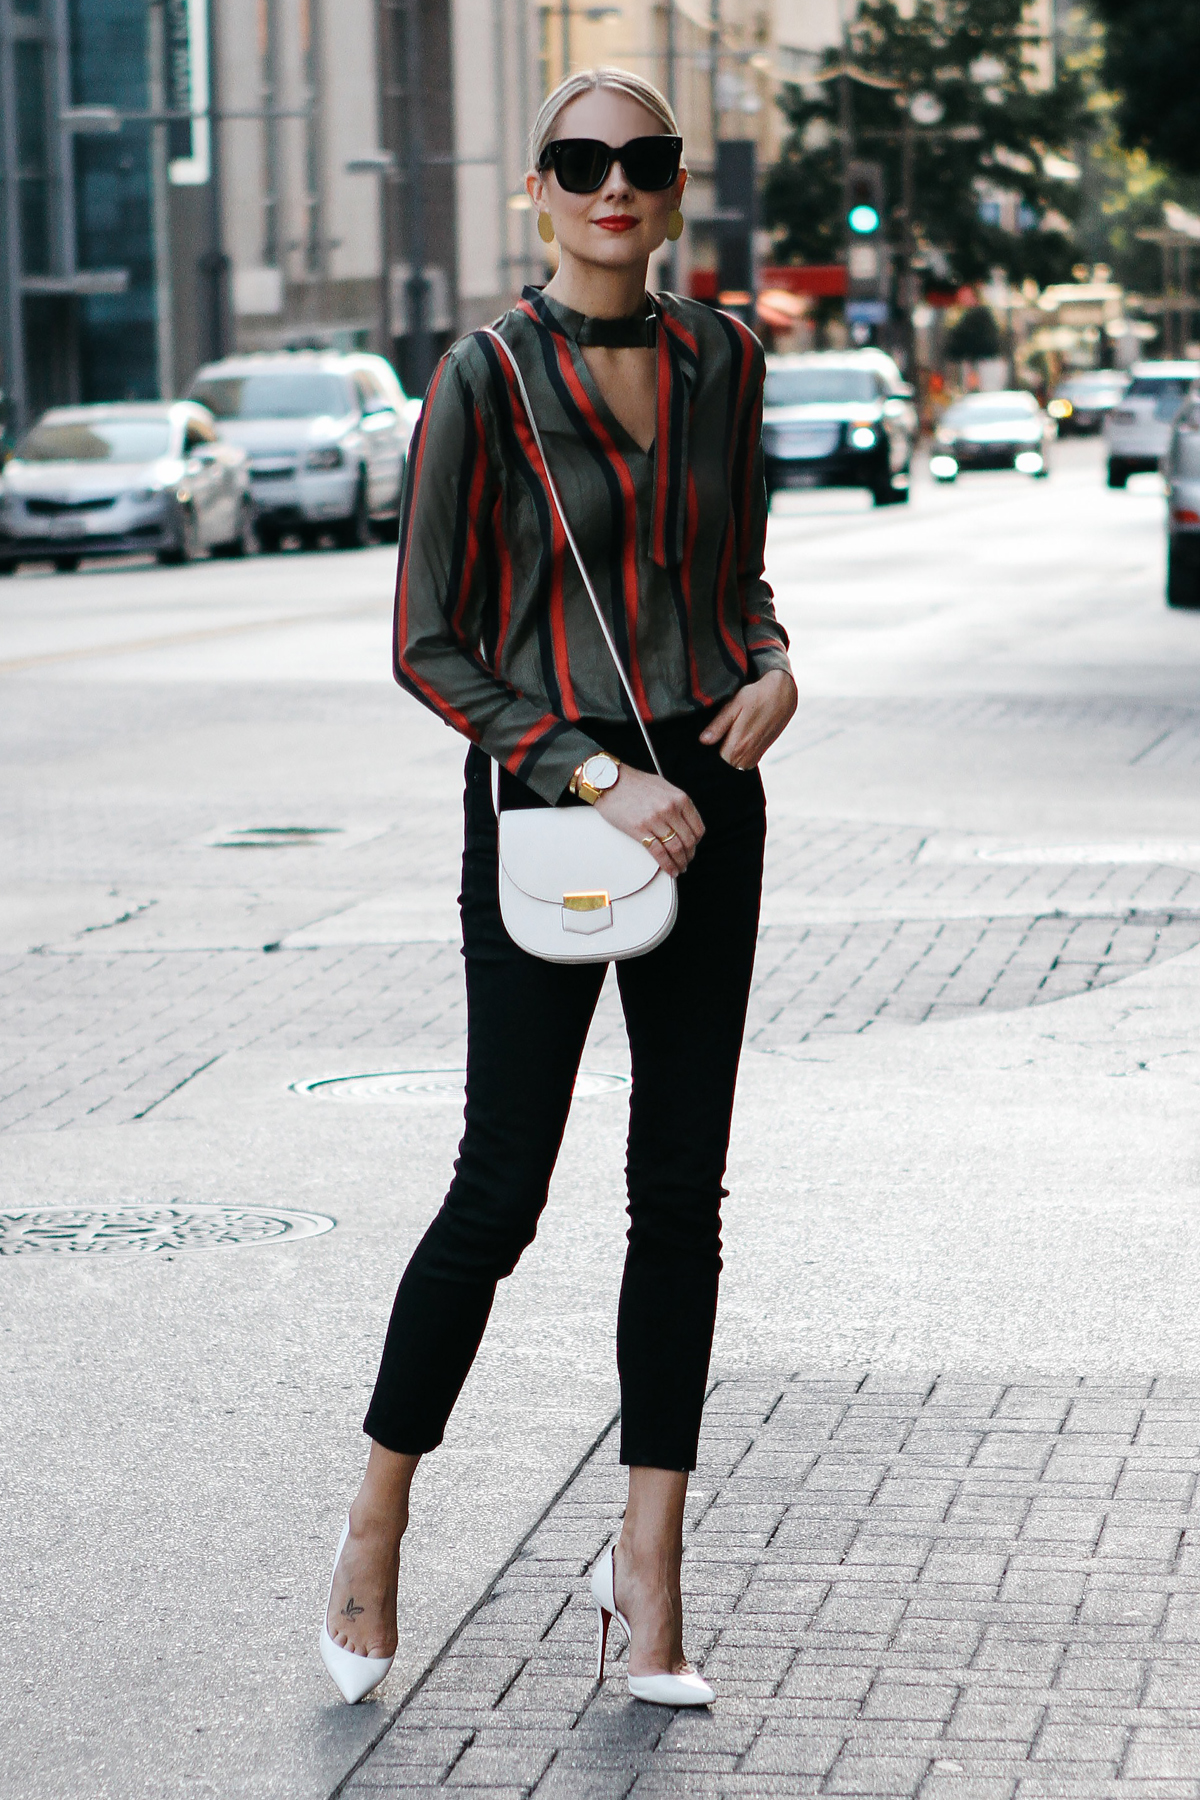 Blonde Woman Wearing Equipment Janelle Striped Blouse Everlane Black Skinny Jeans Christian Louboutin White Pumps Celine Trotteur White Handbag Fashion Jackson Dallas Blogger Fashion Blogger Street Style